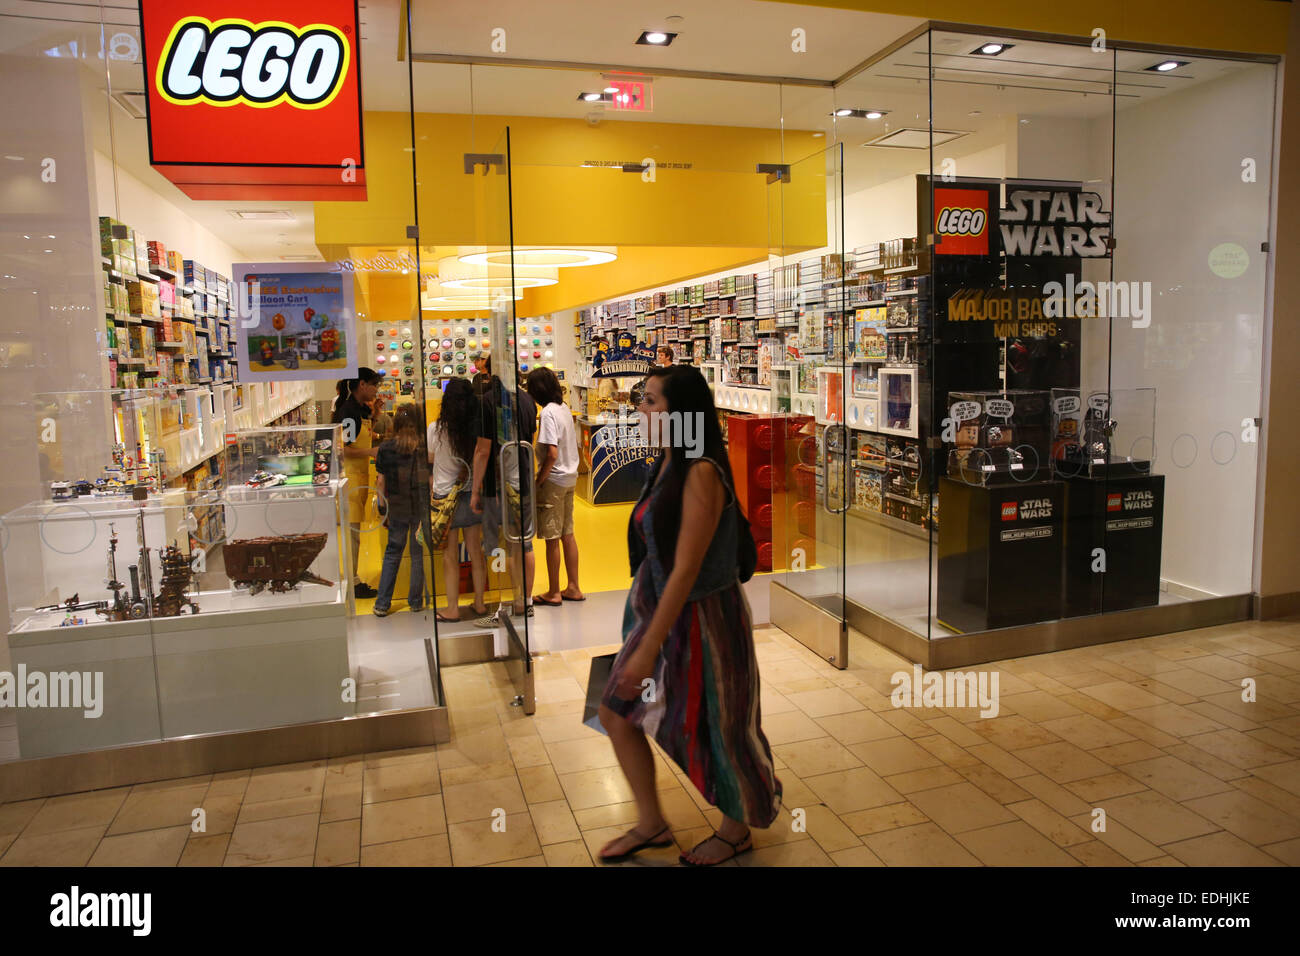 Mission Viejo, California, USA. 08th June, 2014. The Lego store front in Shops at Mission Viejo mall. Lego is a - Stock Image